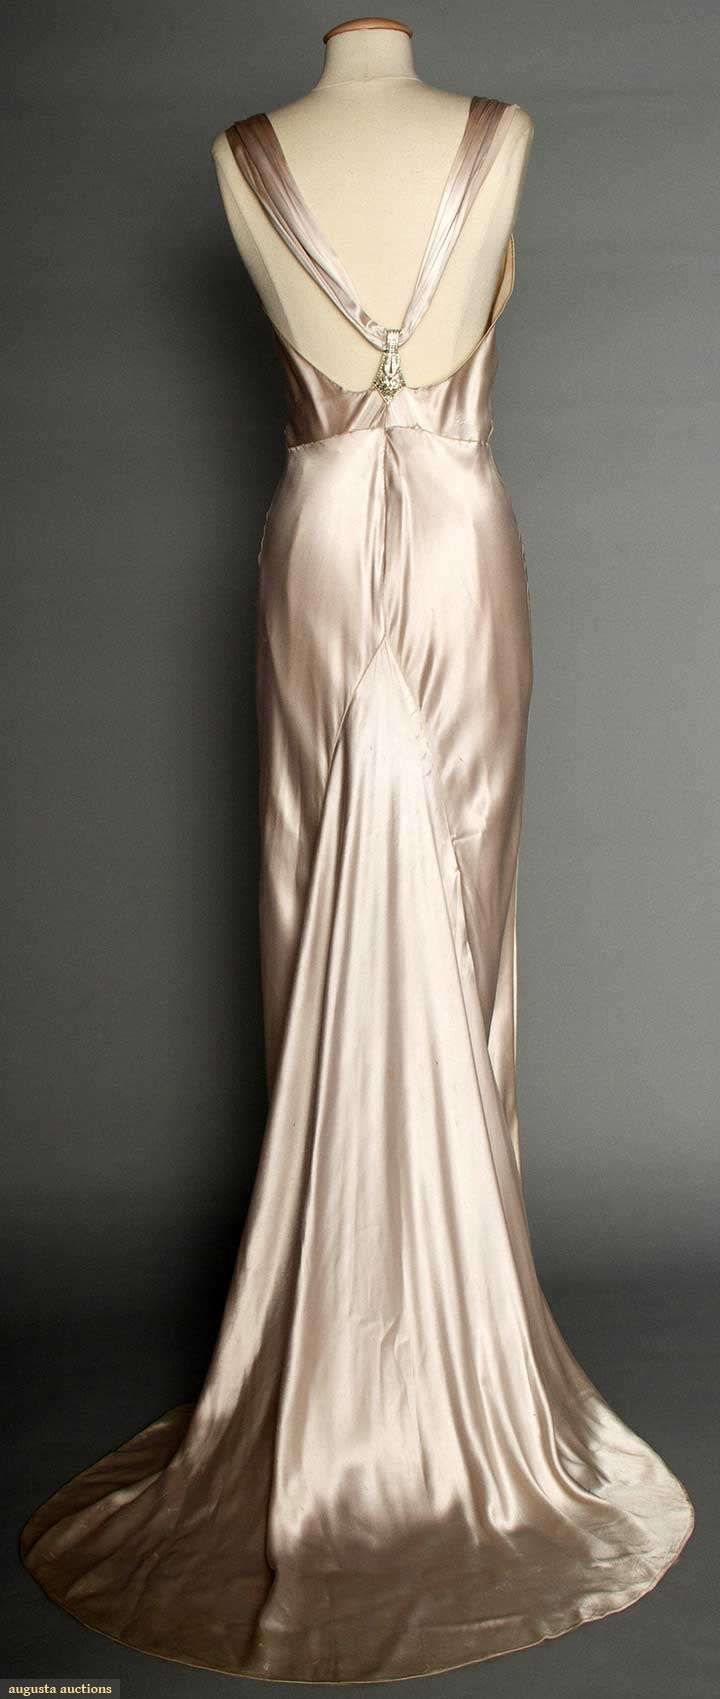 Dress code evening gown - Silver Satin Evening Gown 1930s Pale Lavender Silver Silk Charmeuse Bias Cut